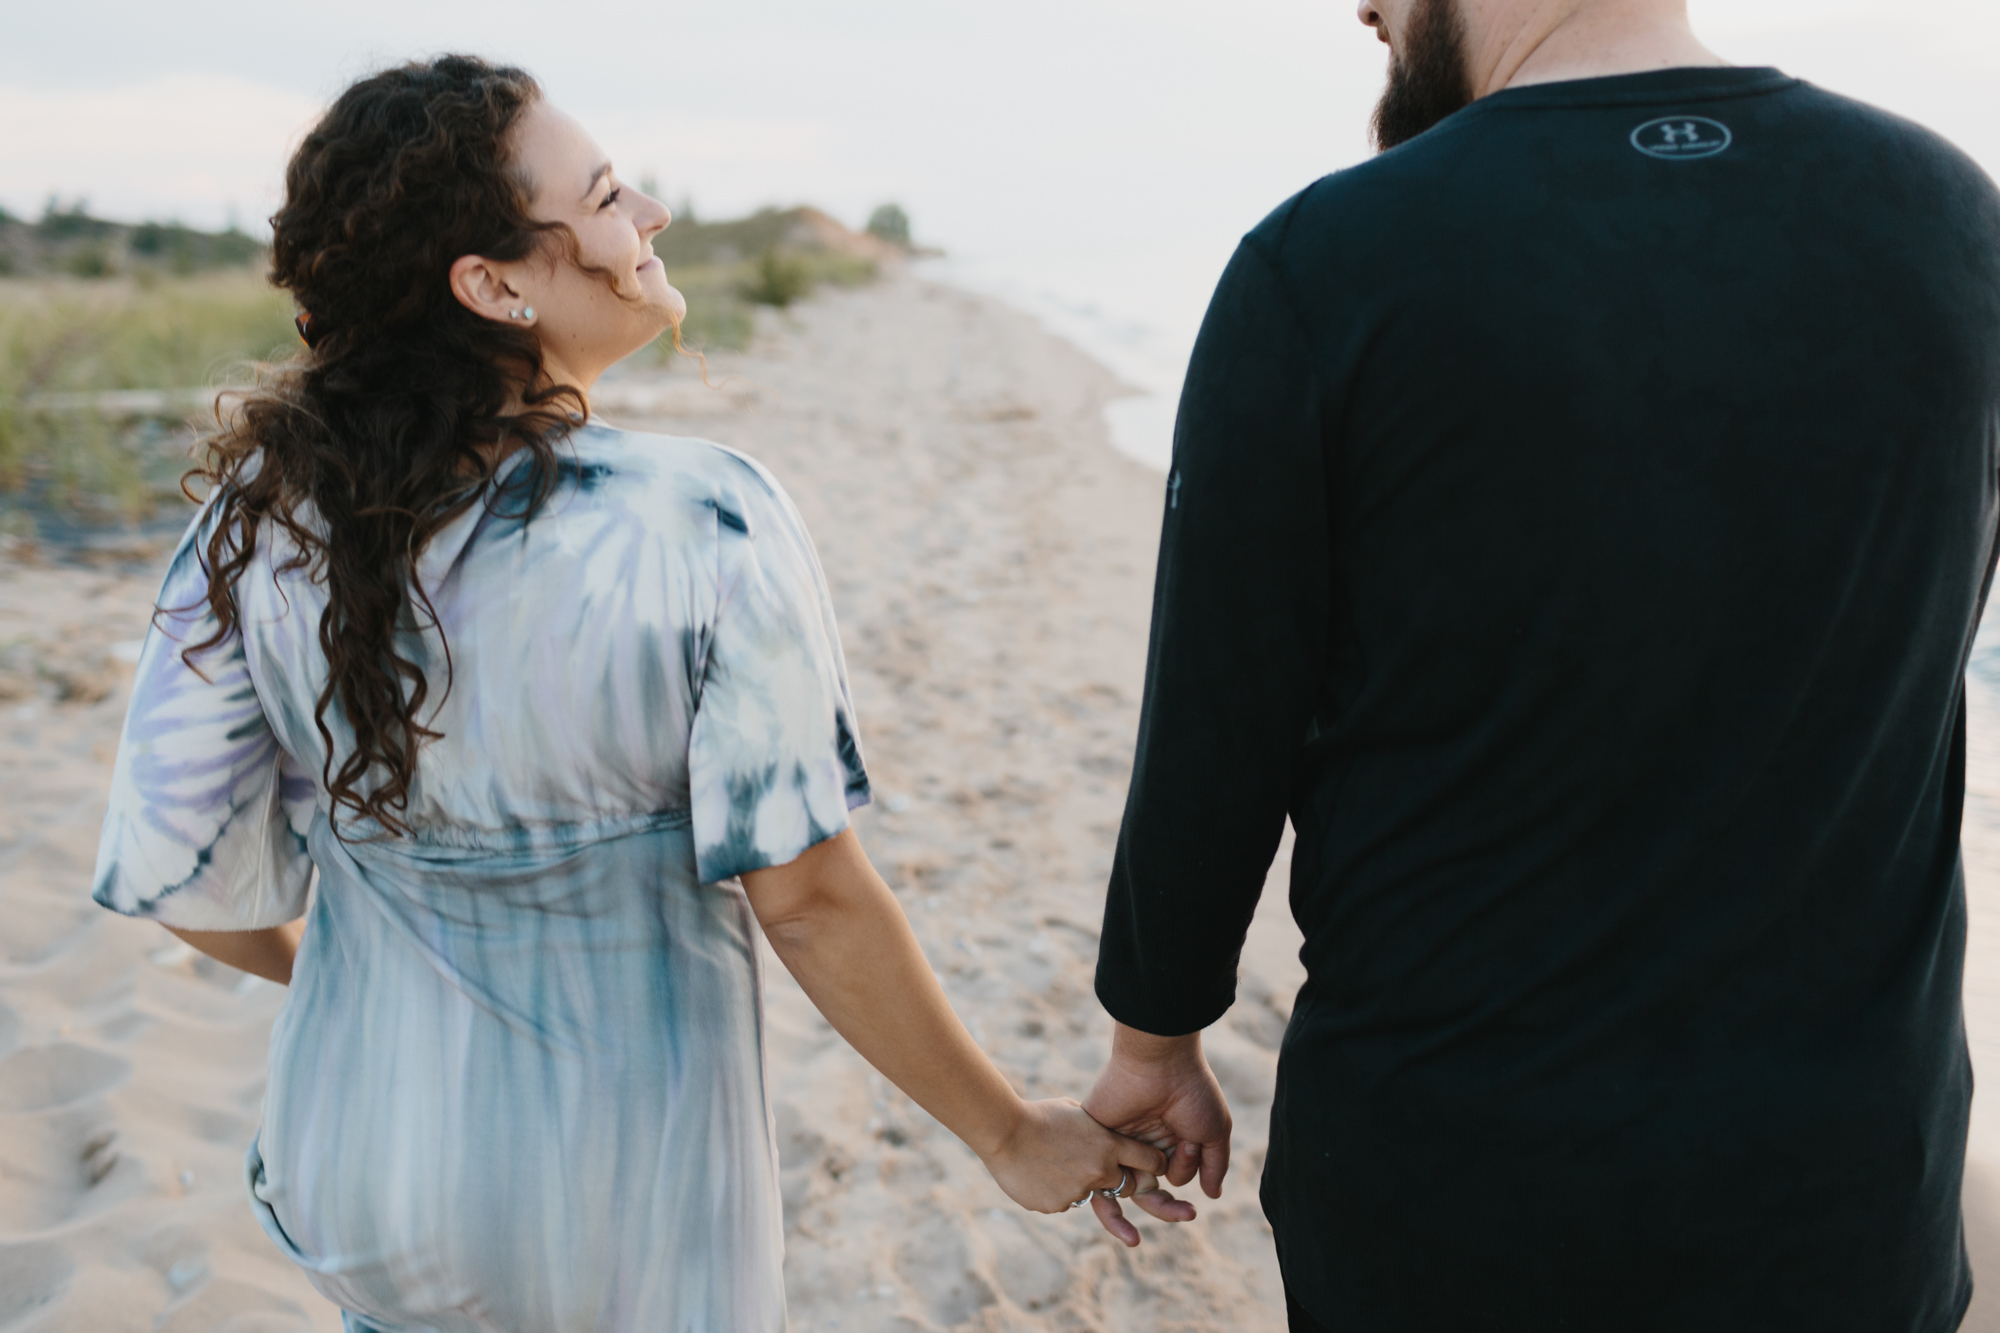 Northern Michigan Sleeping Bear Dunes Wedding Engagement Photographer Mae Stier-033.jpg